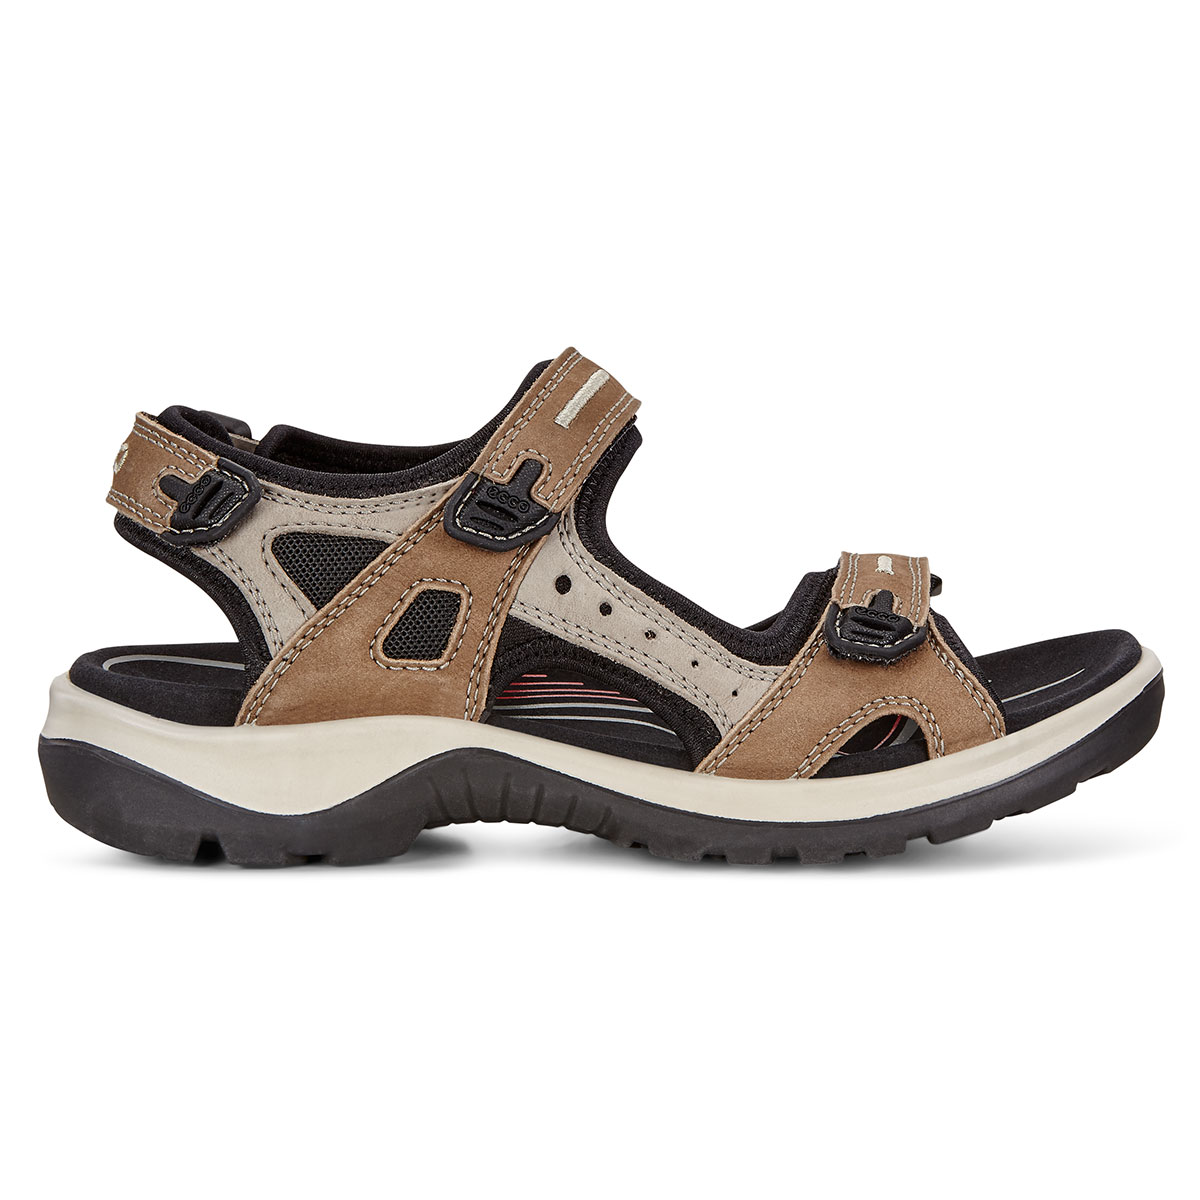 Ecco 2019 Womens Offroad Adjustable Stretch Nubuck Leather Durable Sandals